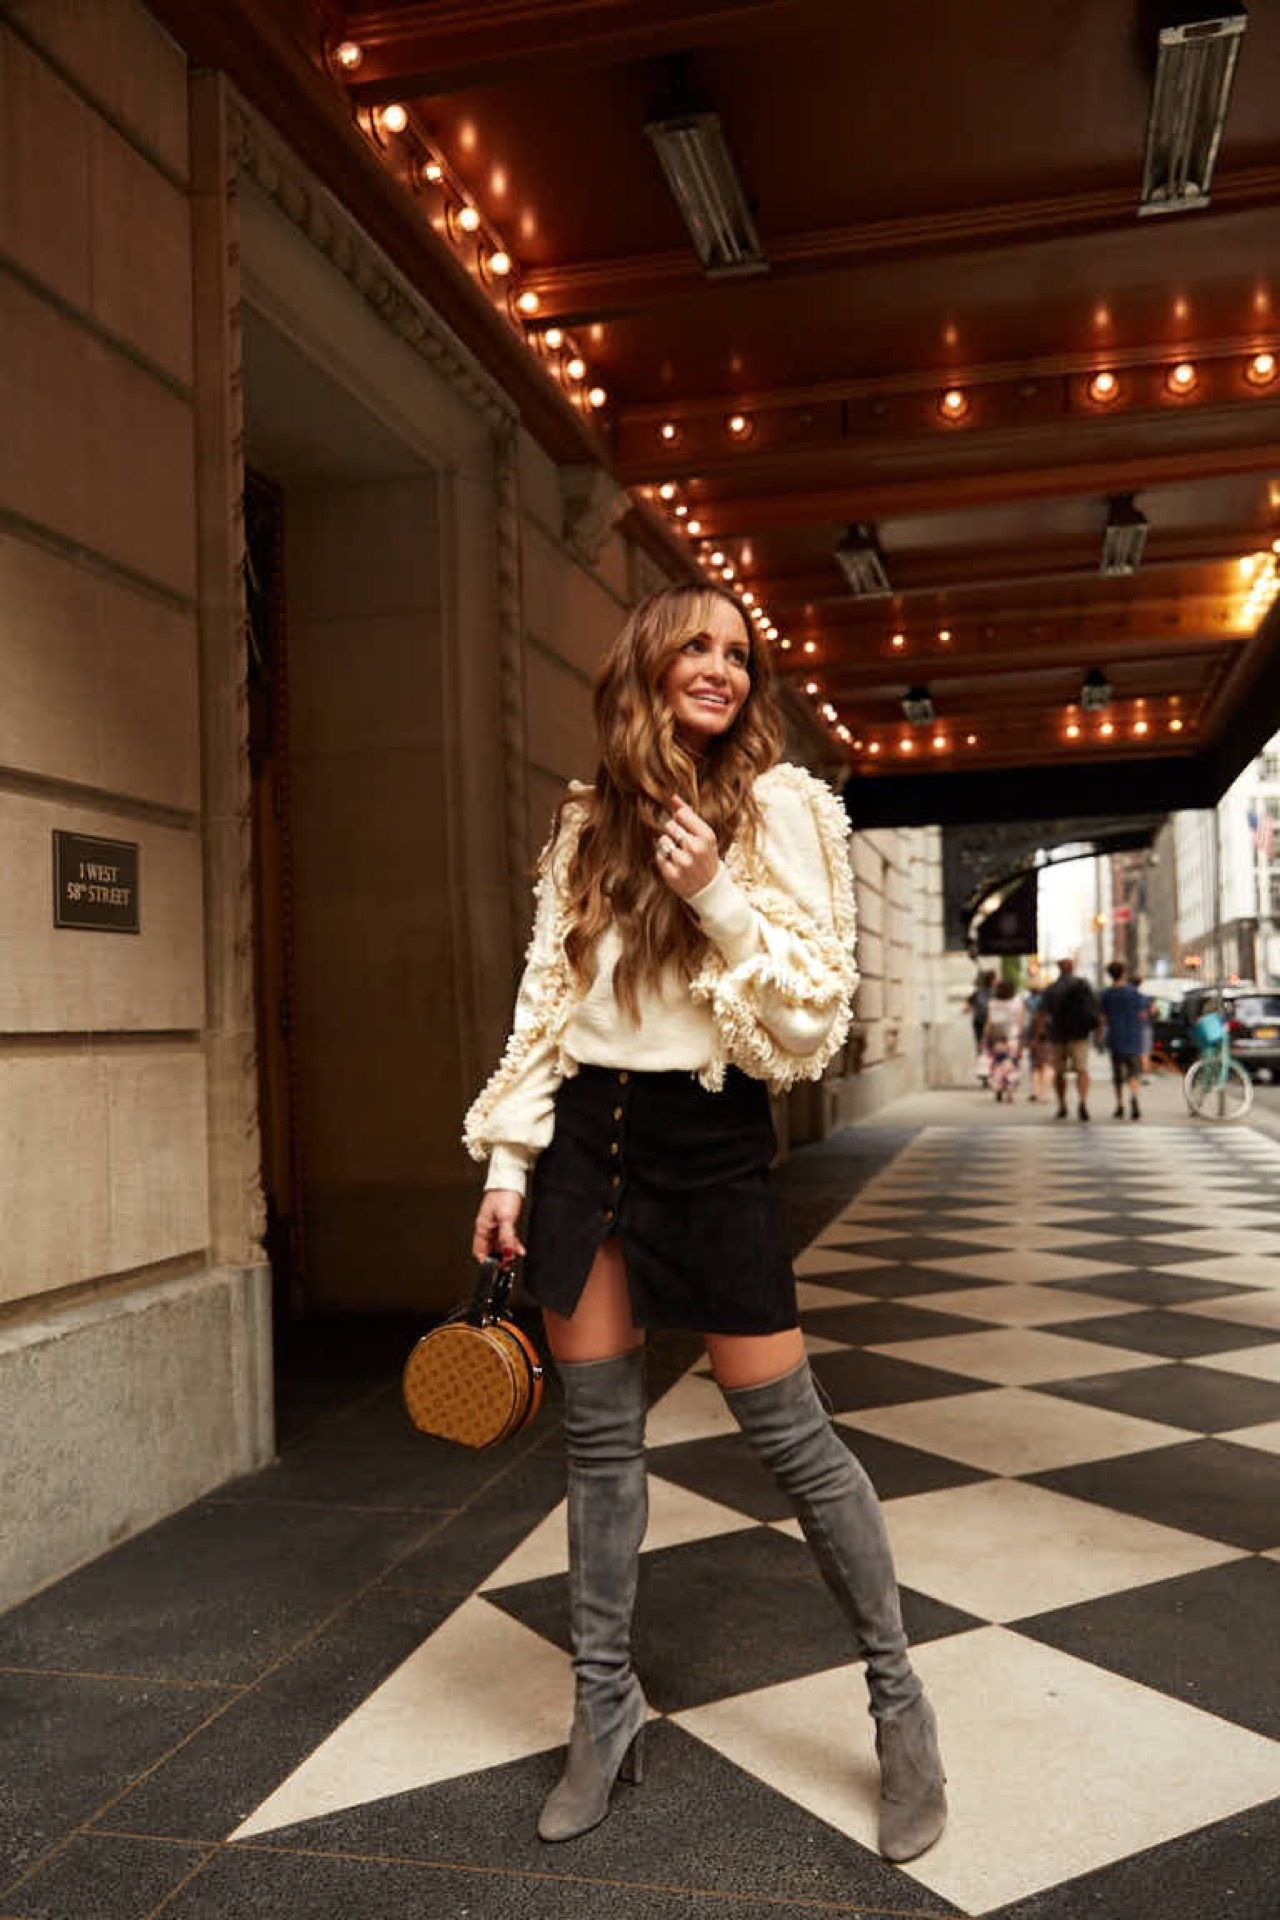 #DKW-Fashion Good Sweater & Thigh Highs